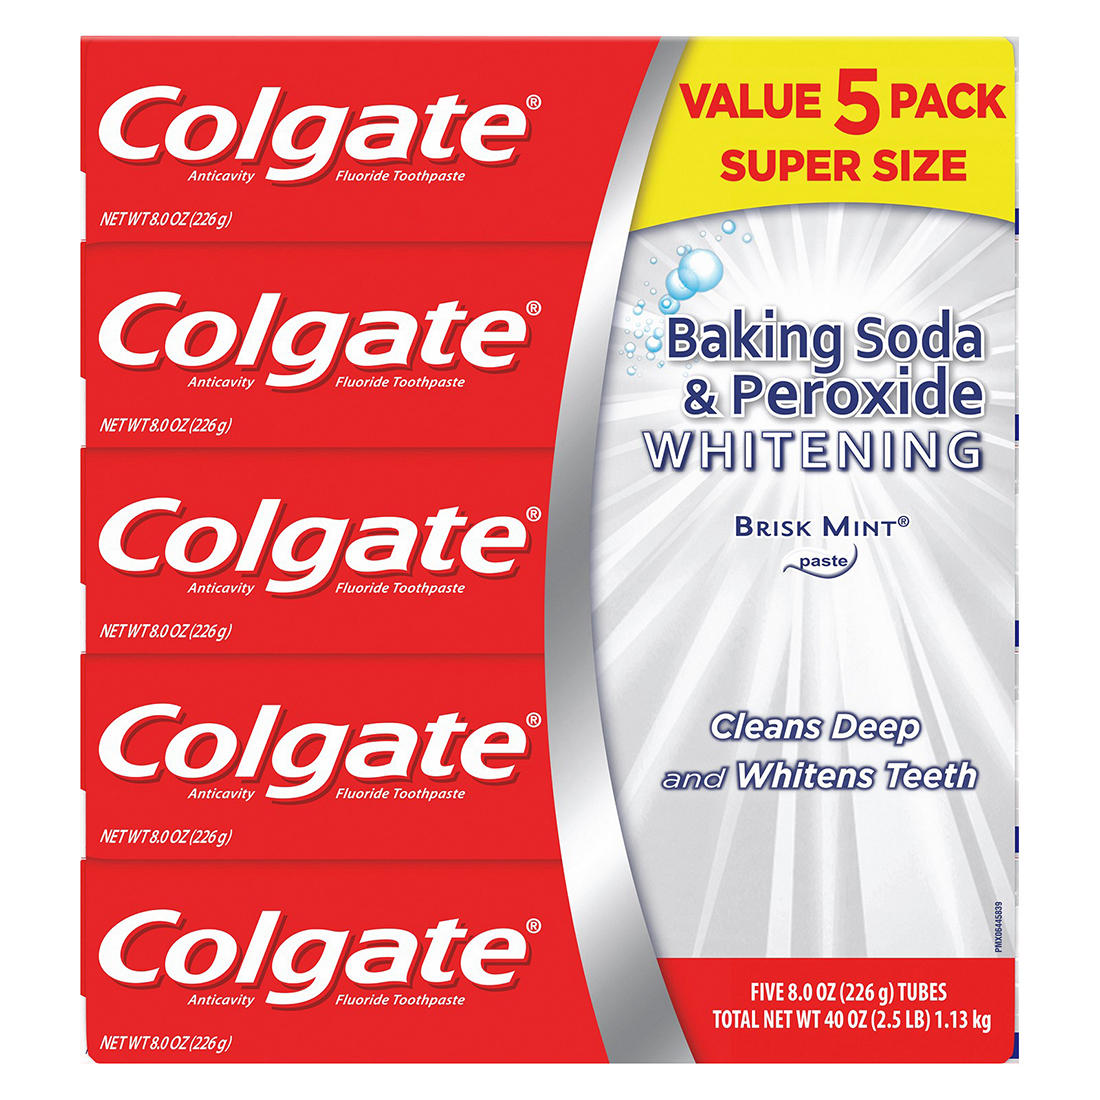 Colgate Baking Soda And Peroxide Whitening Toothpaste Brisk Mint